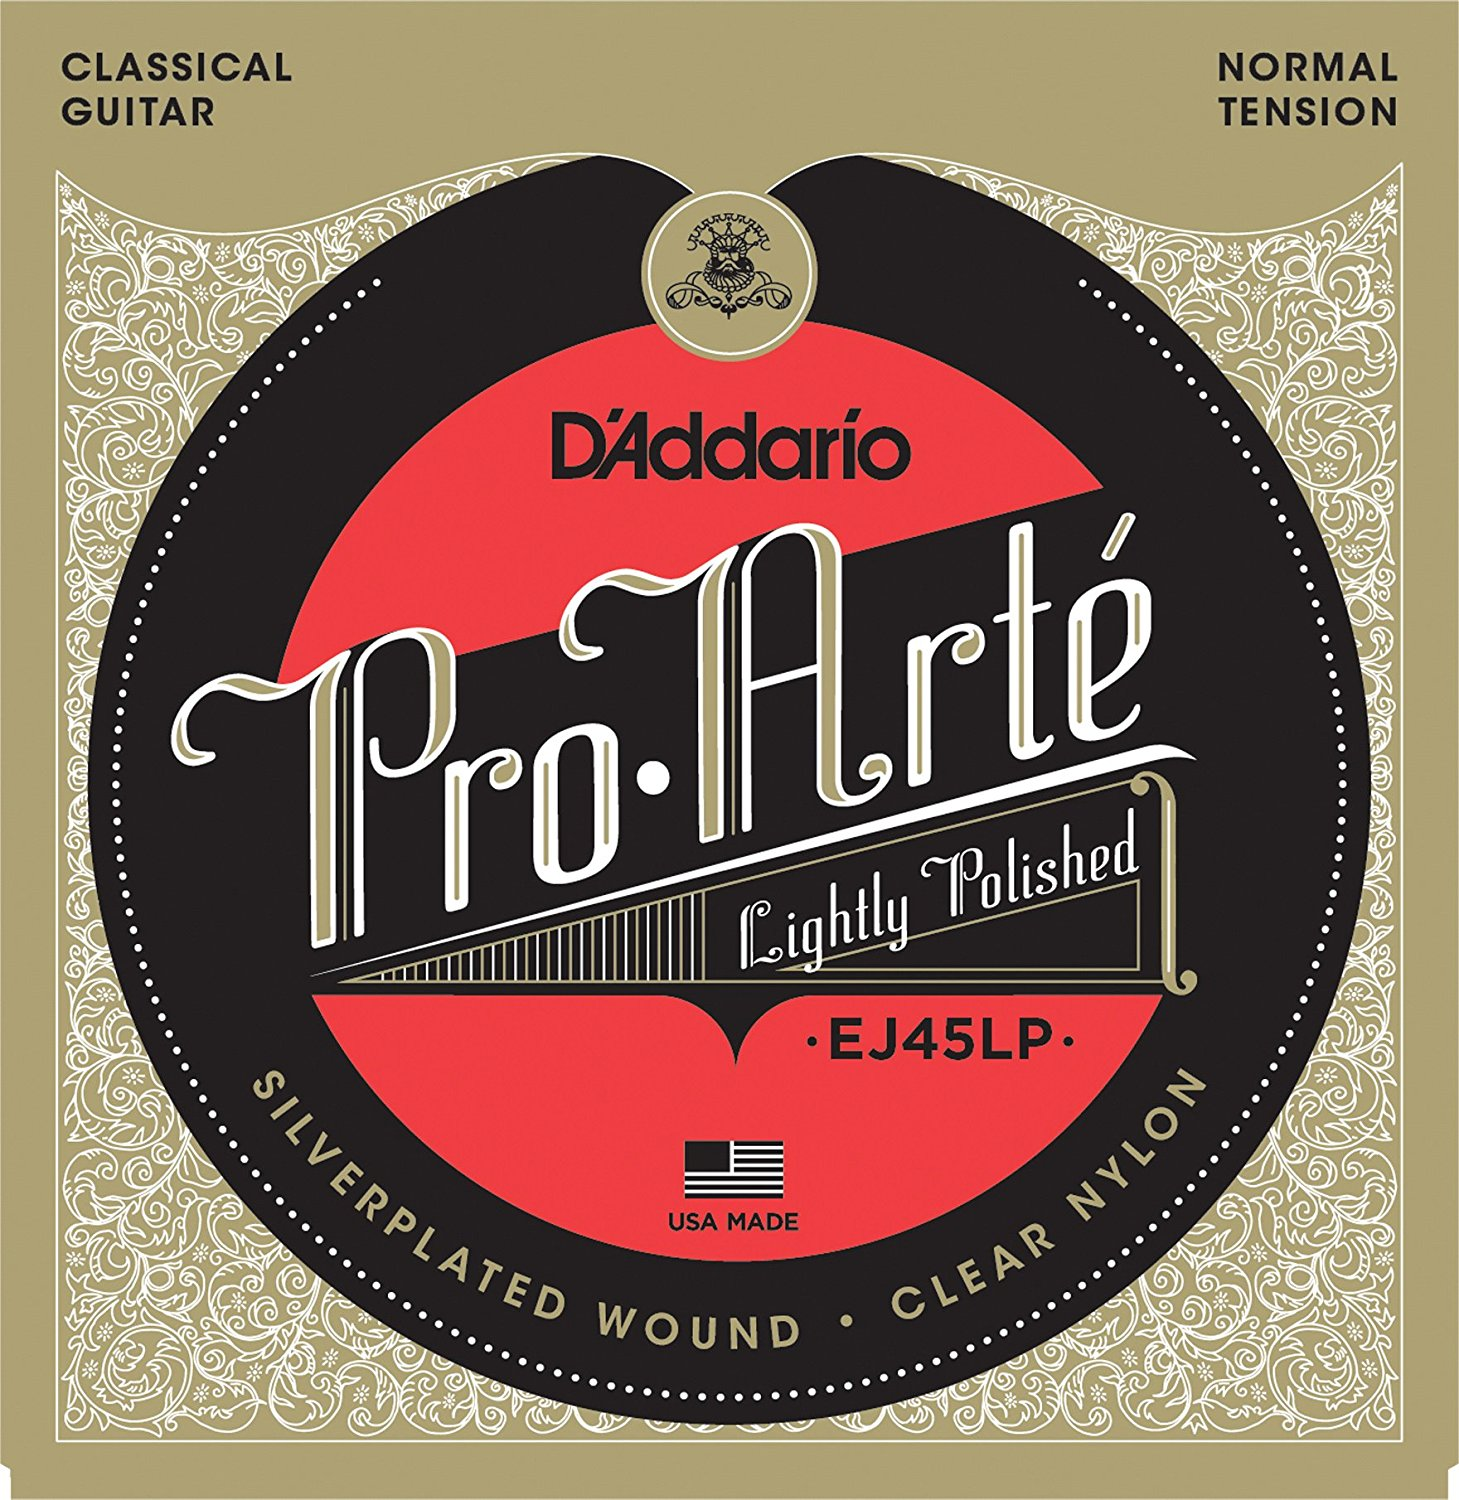 D'Addario EJ45LP Pro-Arte Composite Classical Guitar Strings, Normal Tension classical guitar strings set cgn10 classic nylon silver plated normal tension 028 045 classical guitar strings 6strings set